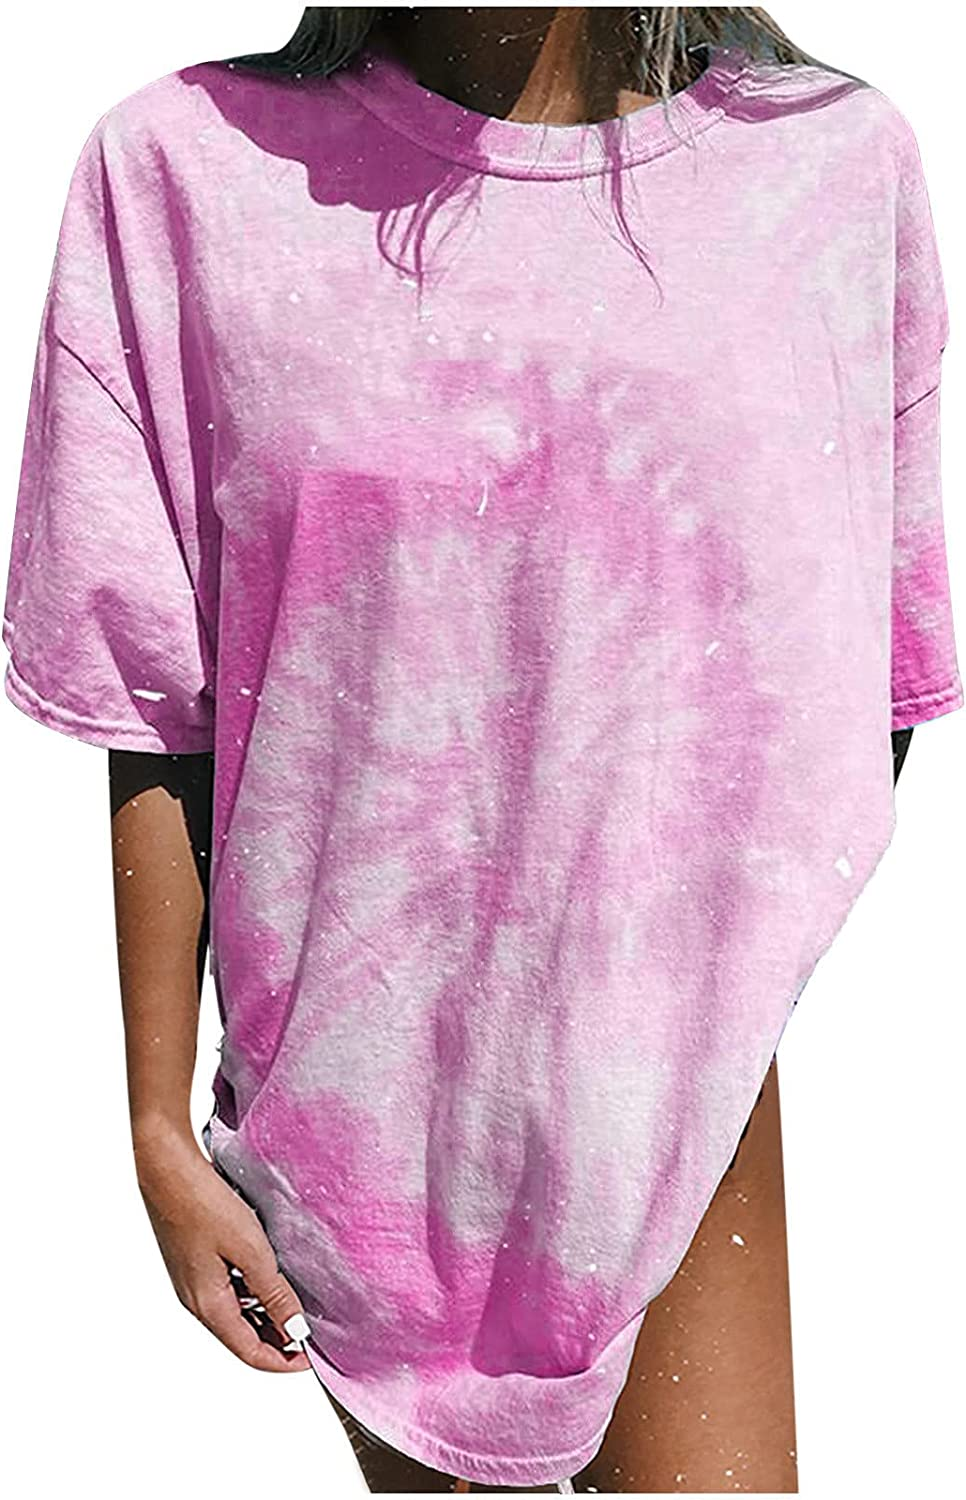 TARIENDY Tie Dye Tops for Women Loose Oversized Blouse Short Sleeve Tshirt Fashion Round Neck Tees